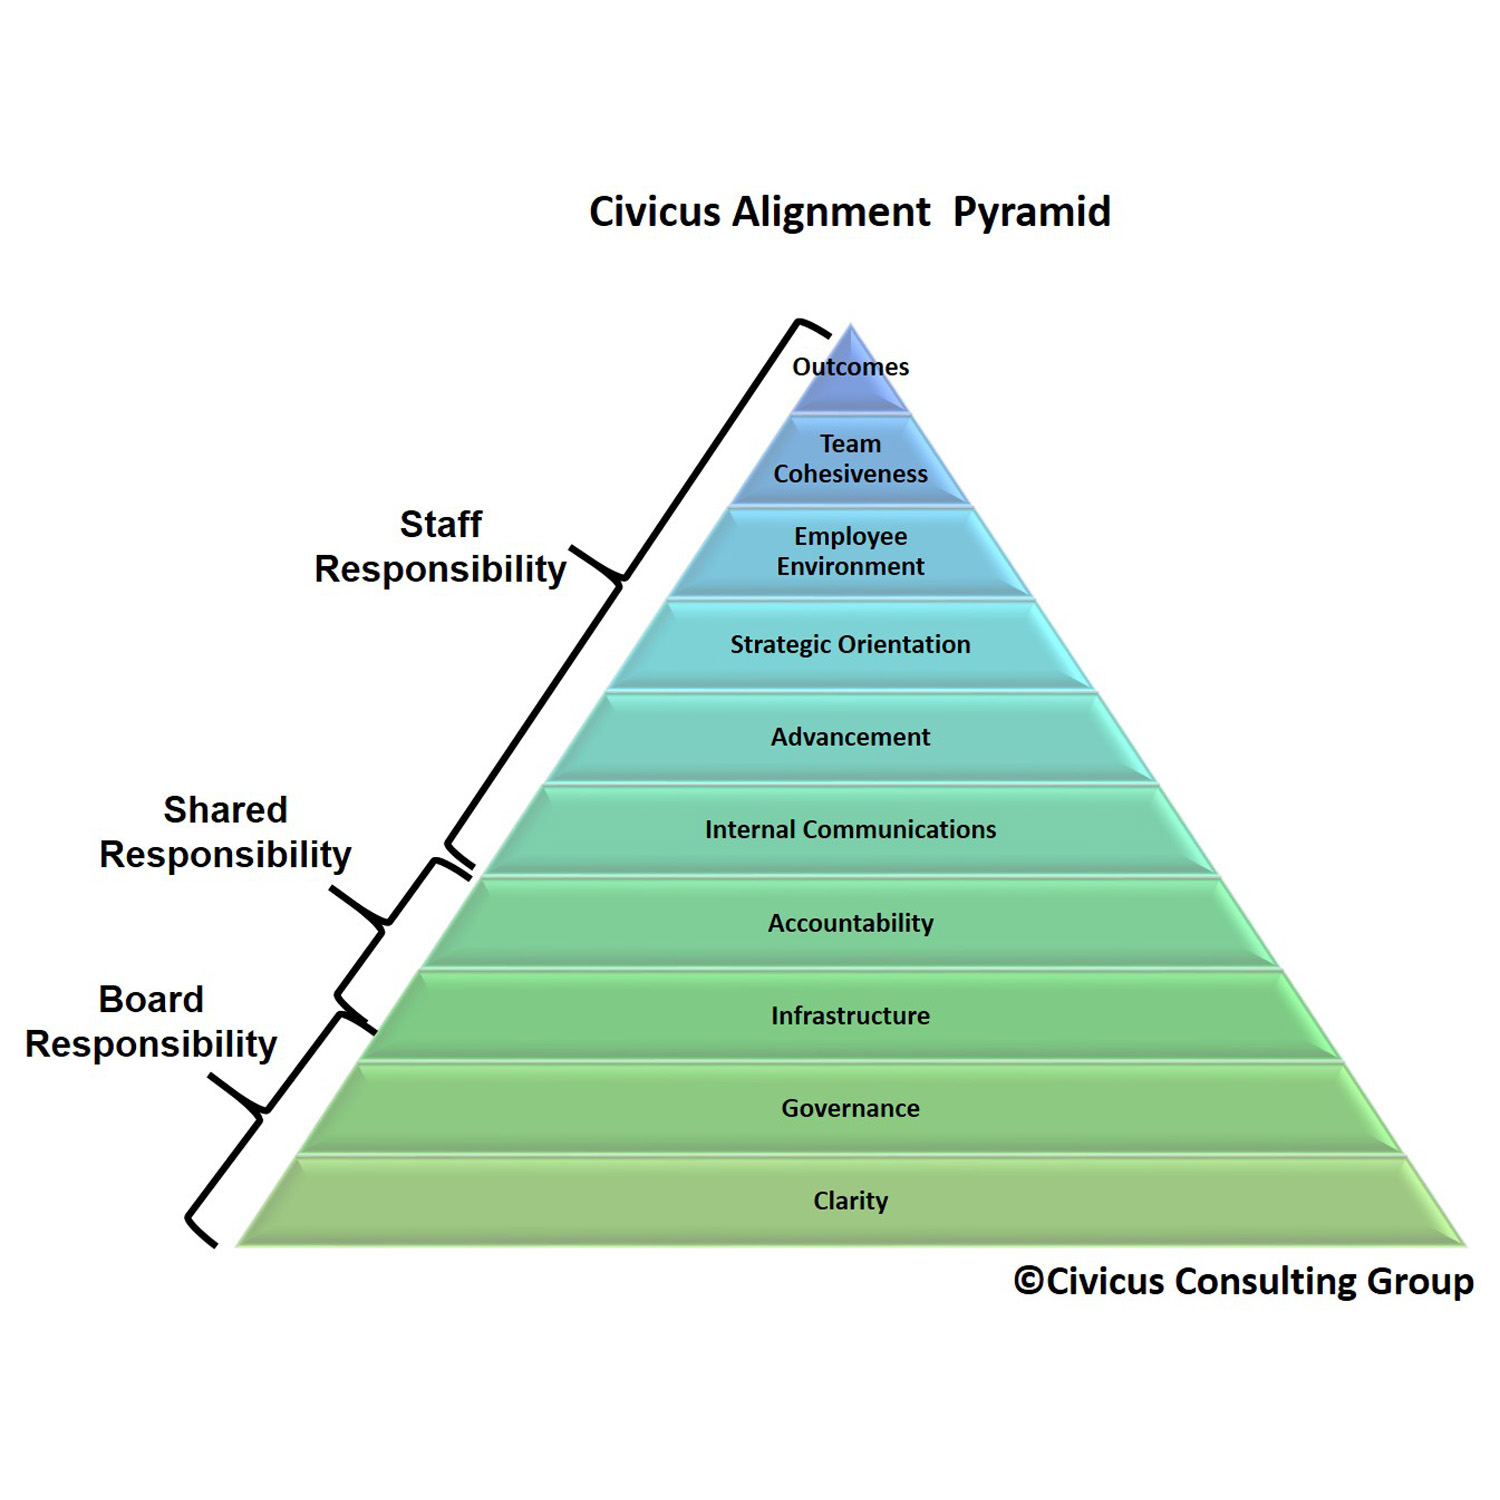 The Civicus Alignment Pyramid